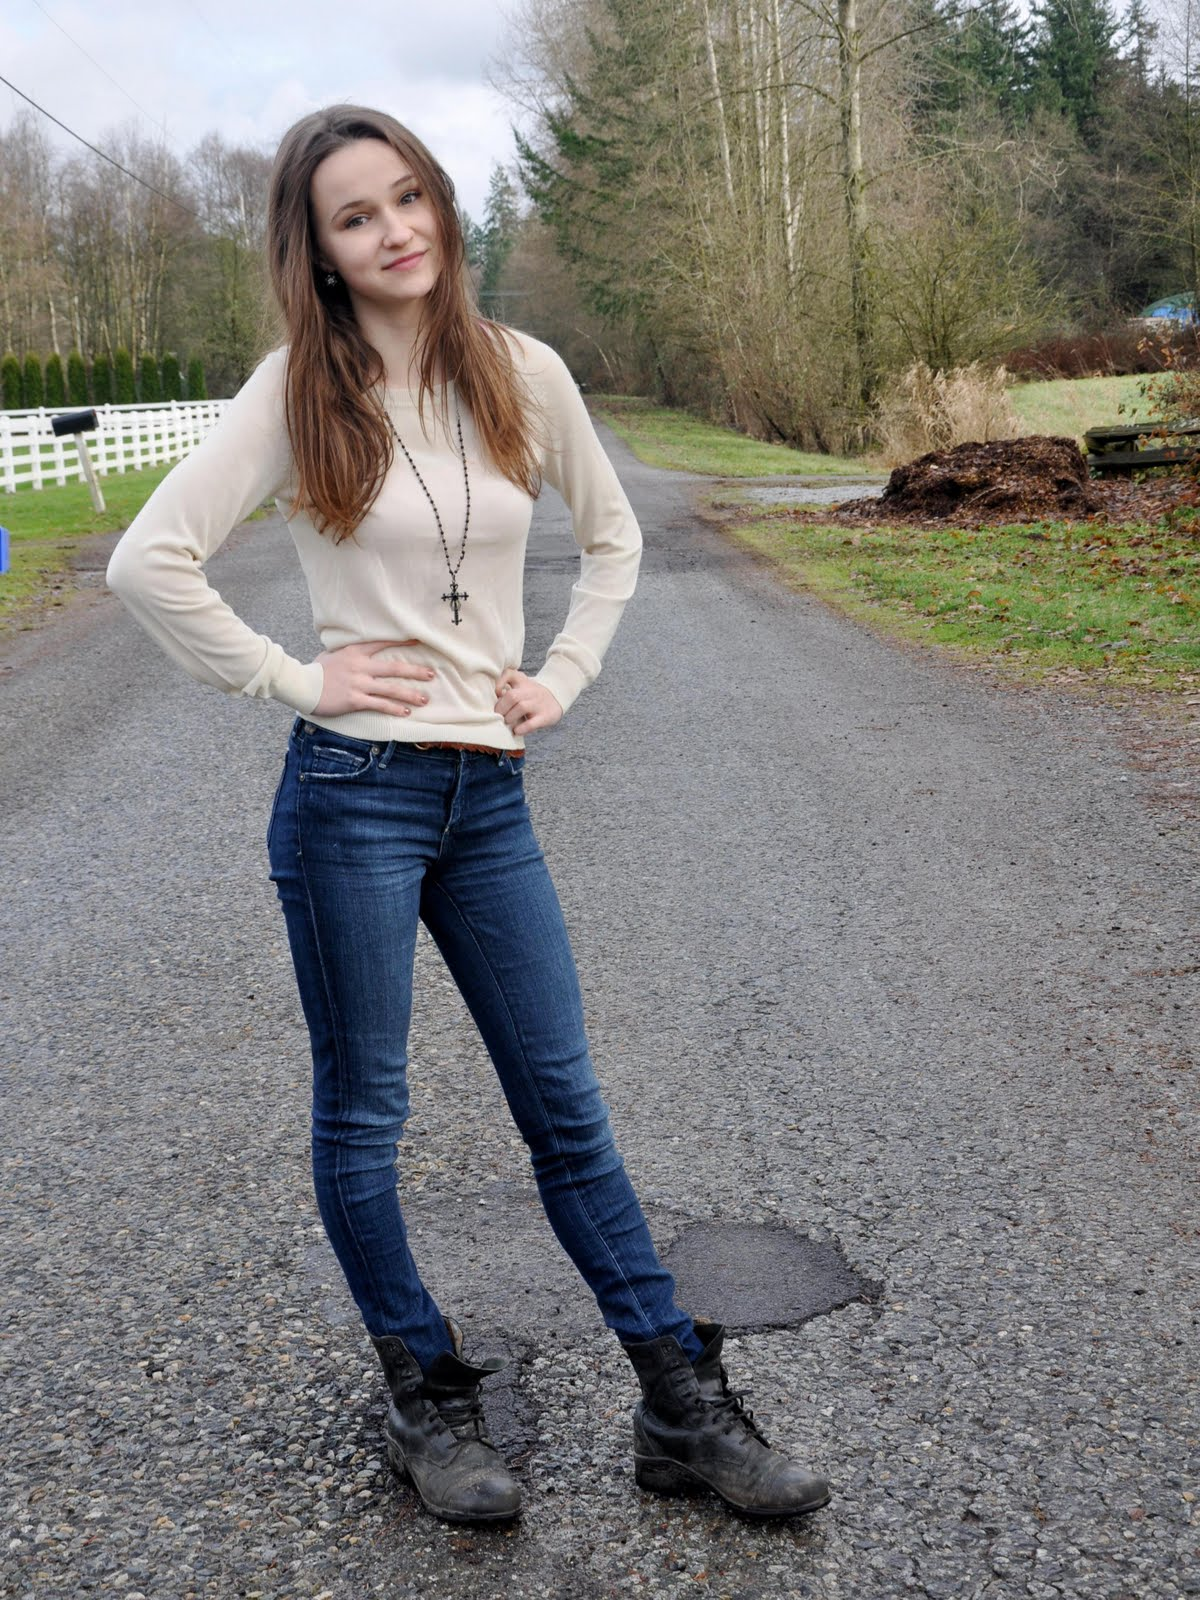 tight teen jeans Young